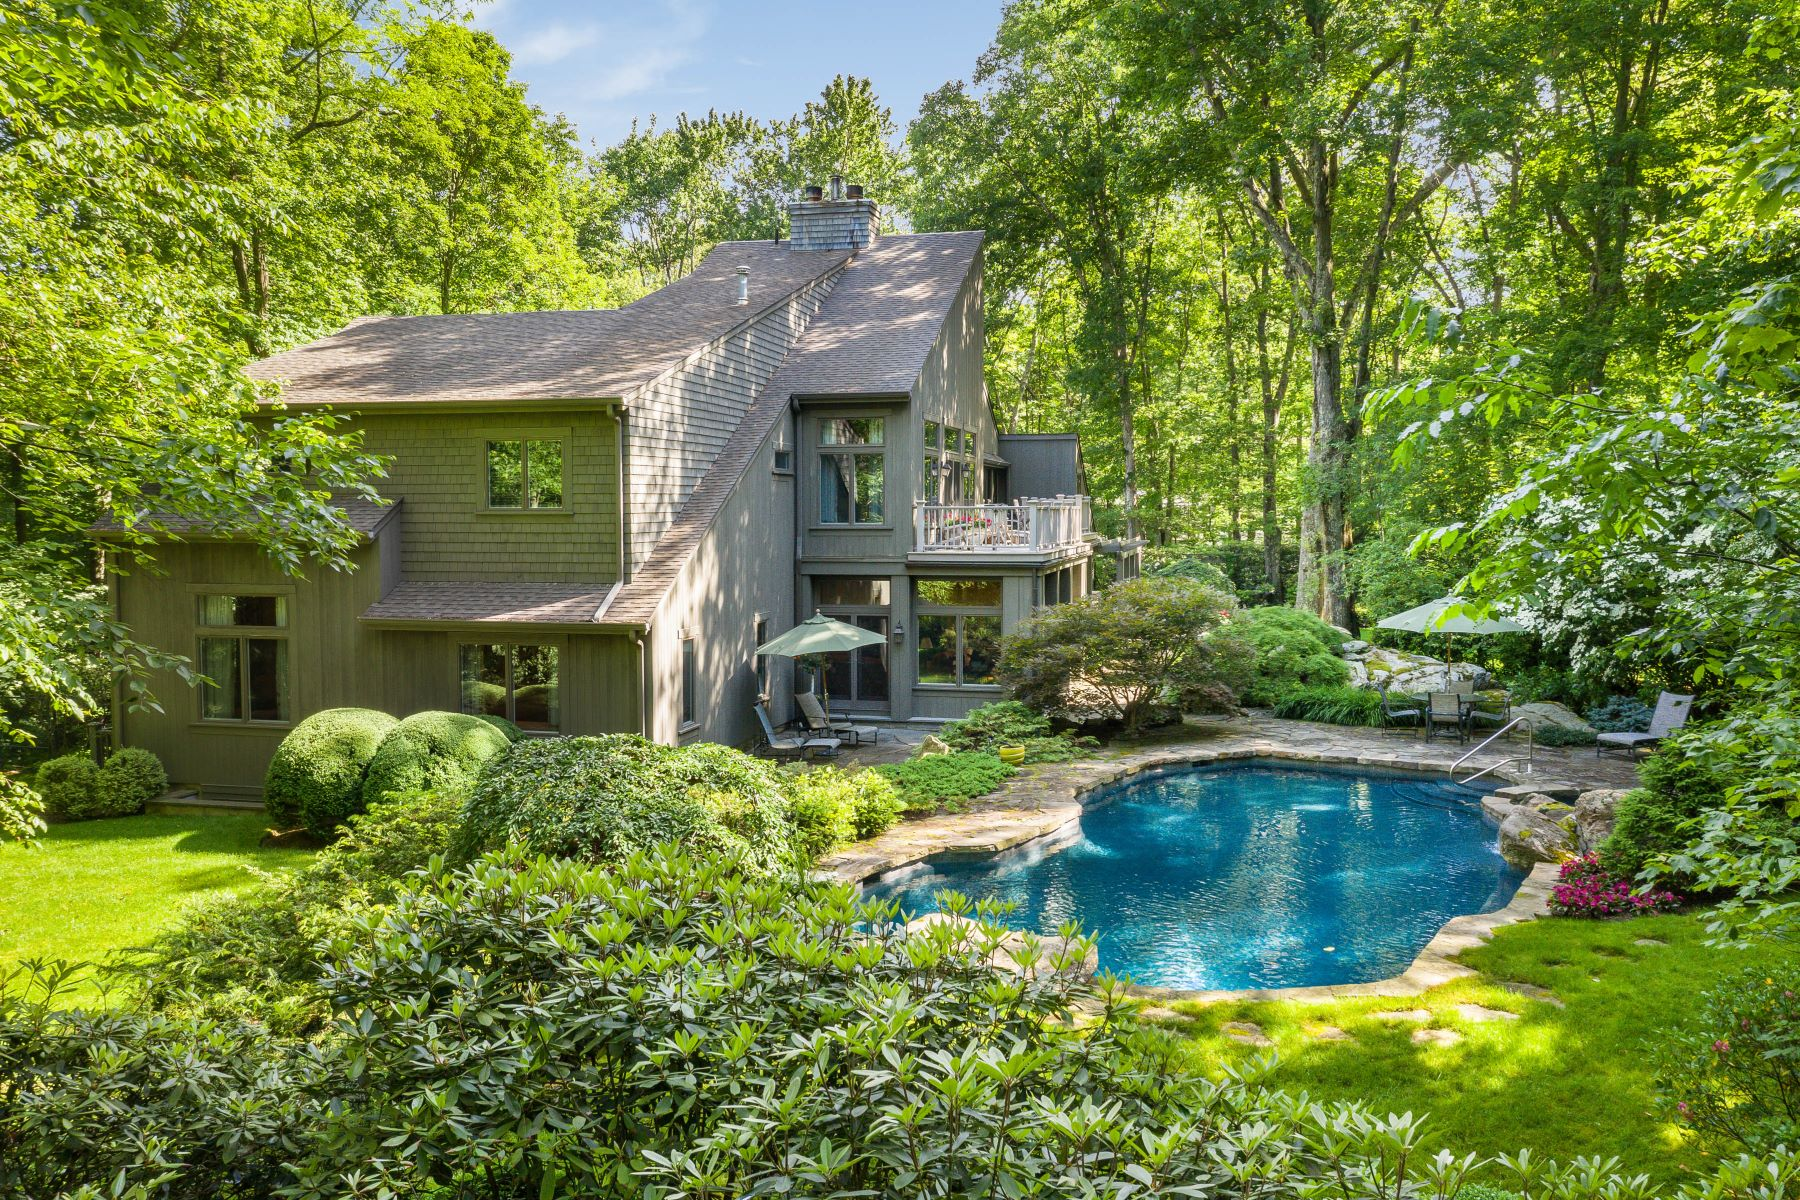 Single Family Homes for Sale at 17 Eastwoods Road Pound Ridge, New York 10576 United States